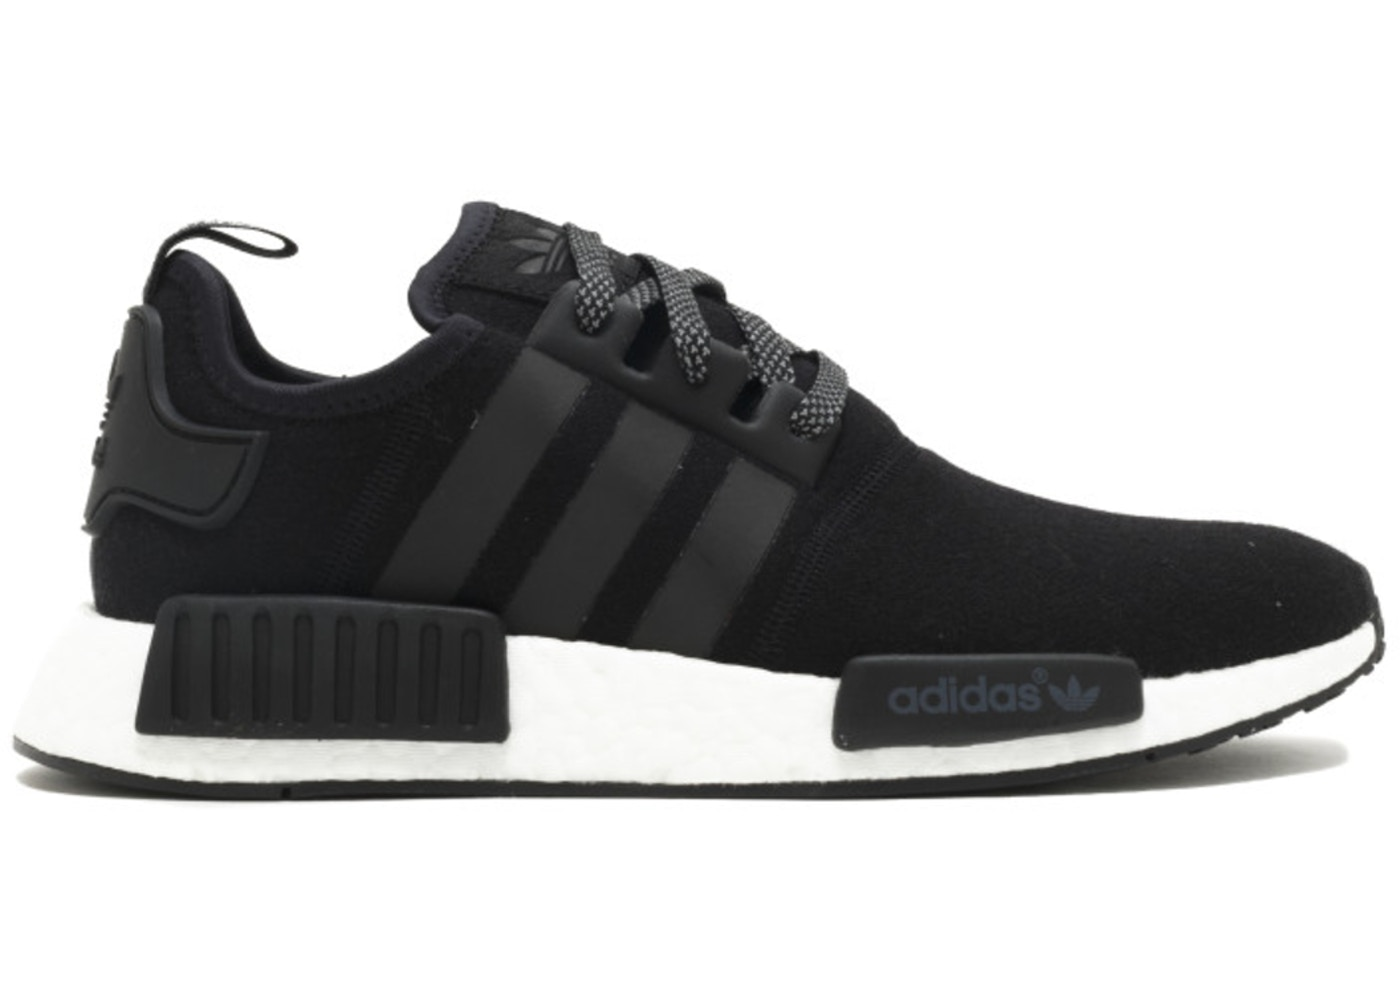 a9fcf8f95 Sell. or Ask. Size: 12. View All Bids. adidas NMD R1 Black Wool